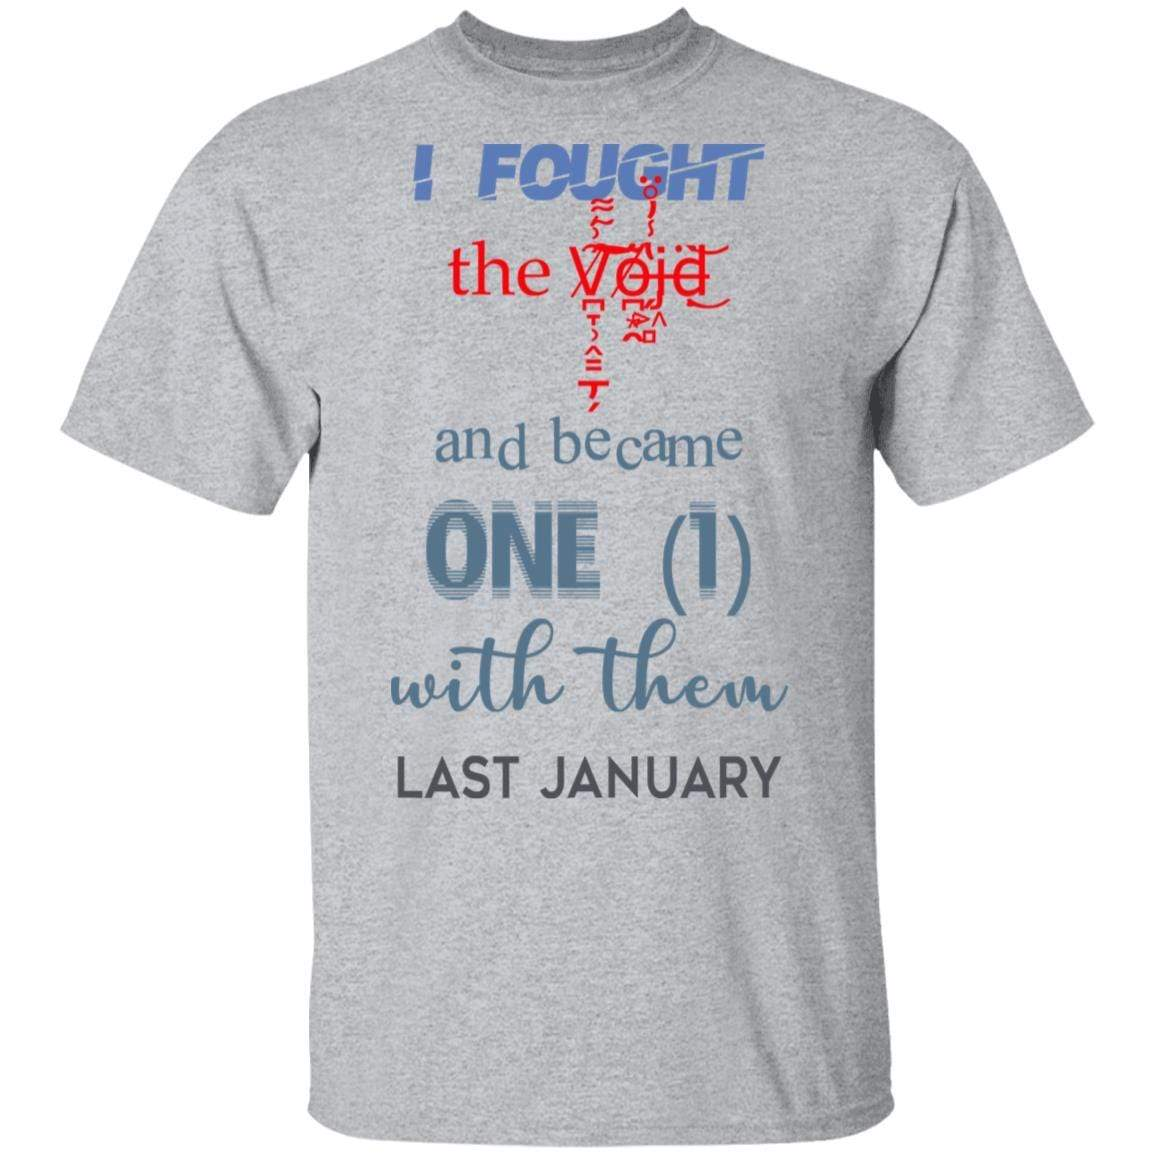 I Fought The Vojd And Became One With Them Last January T-Shirts, Hoodies 1049-9972-87130081-48200 - Tee Ript